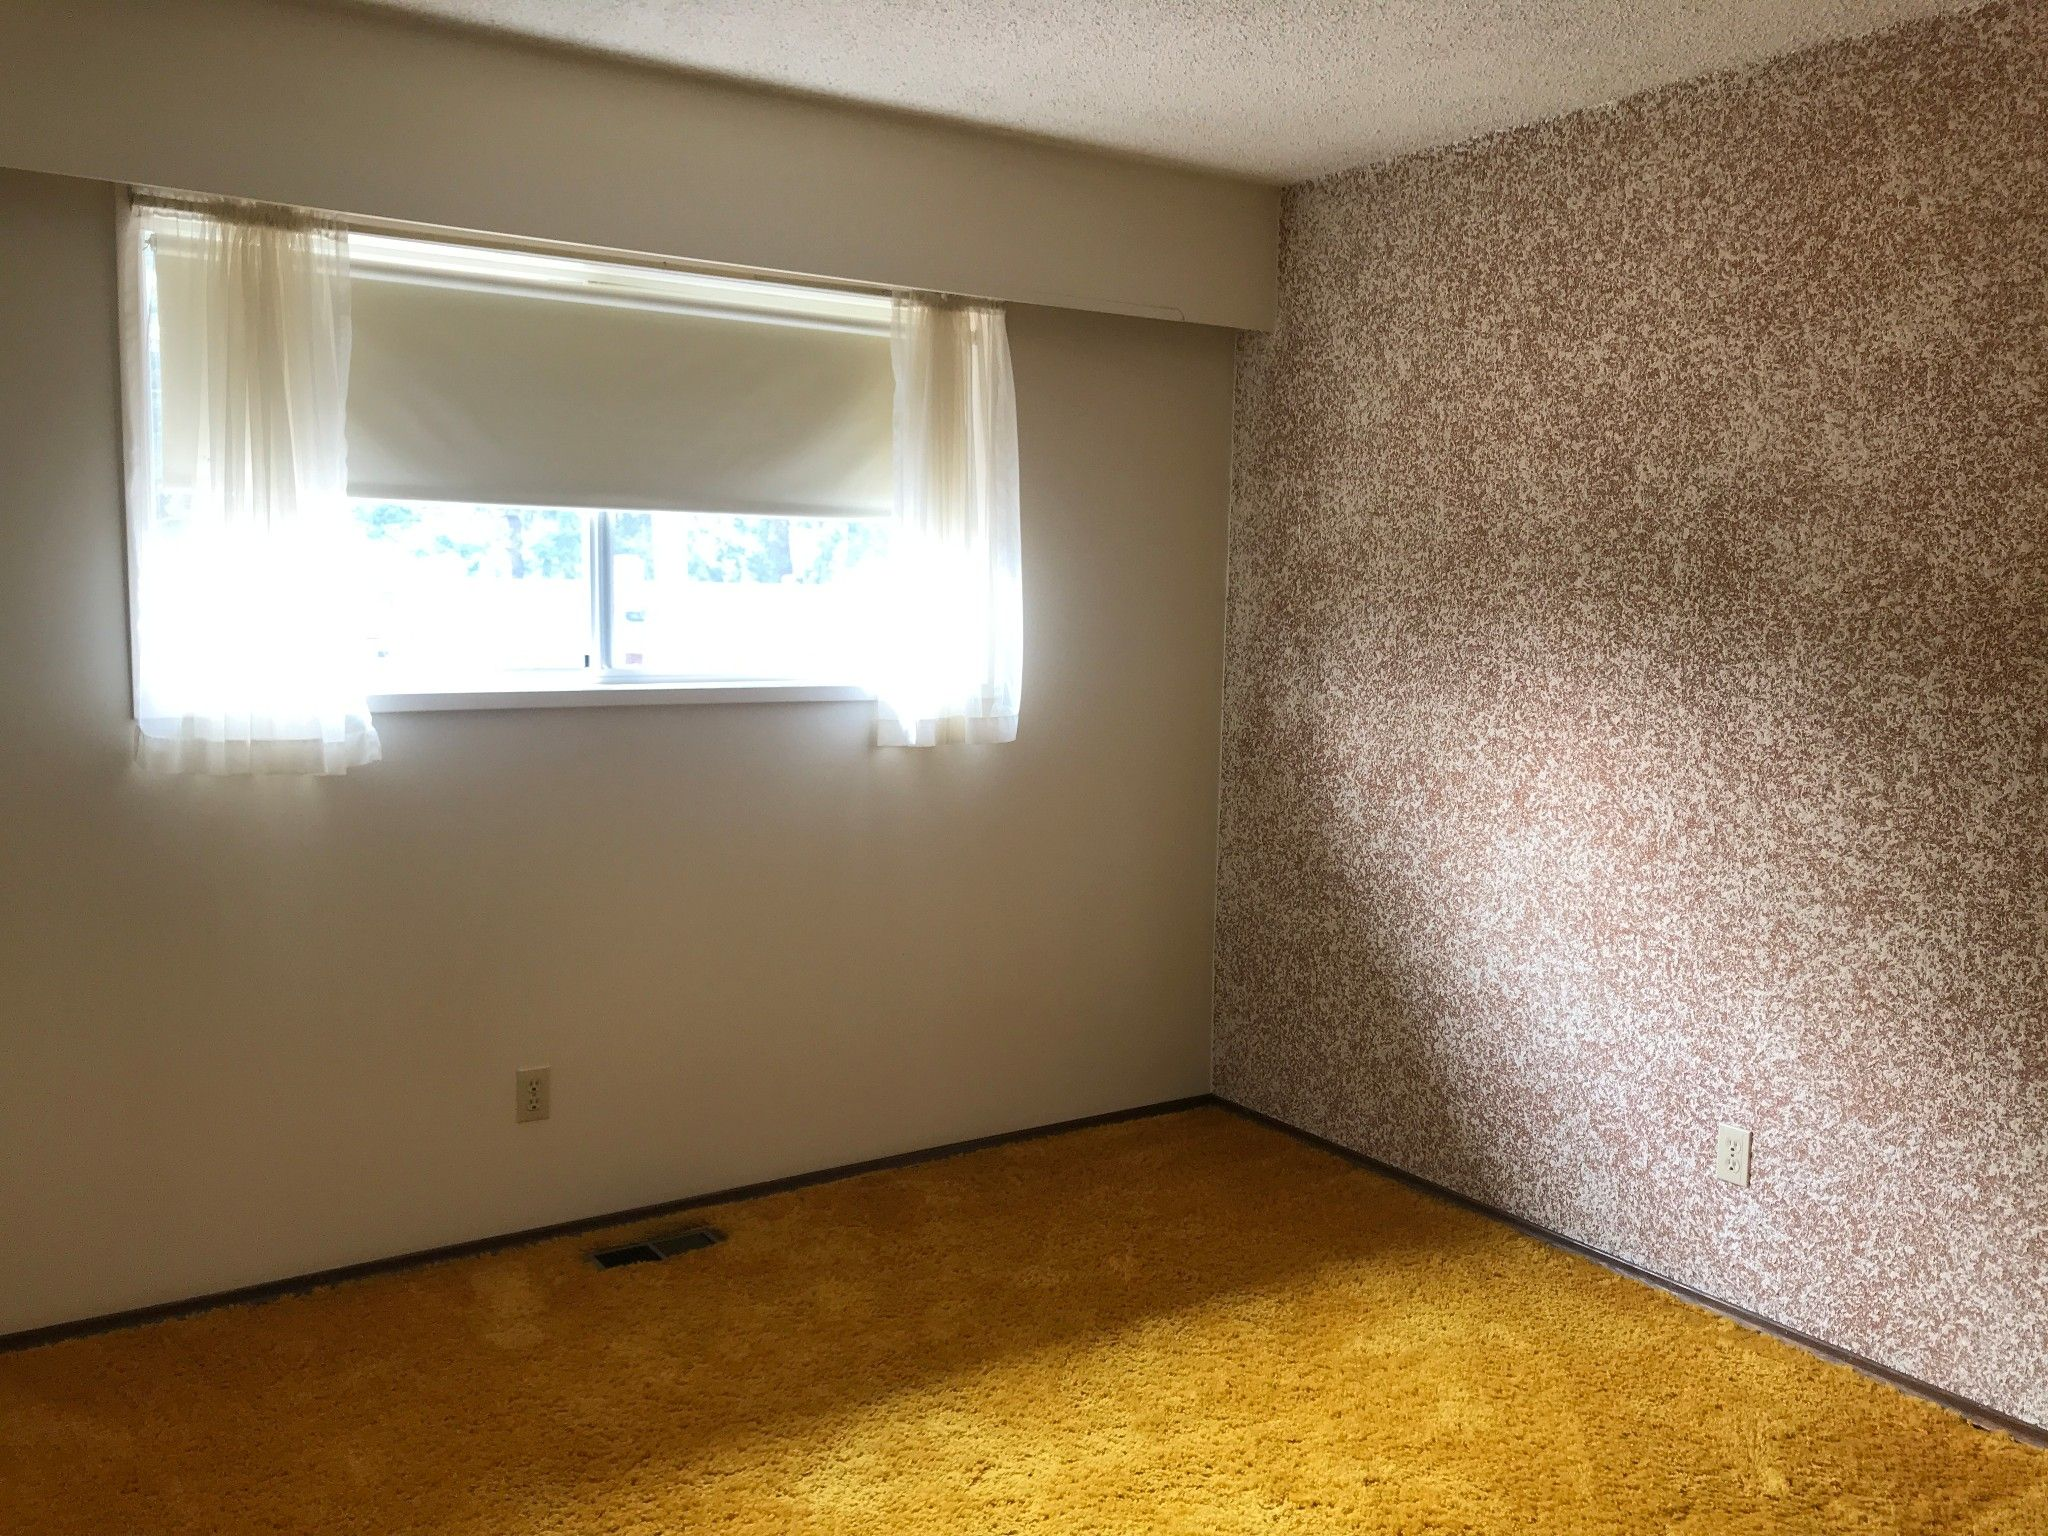 Photo 8: Photos: 2136 Topaz St. in Abbotsford: Abbotsford West House for rent